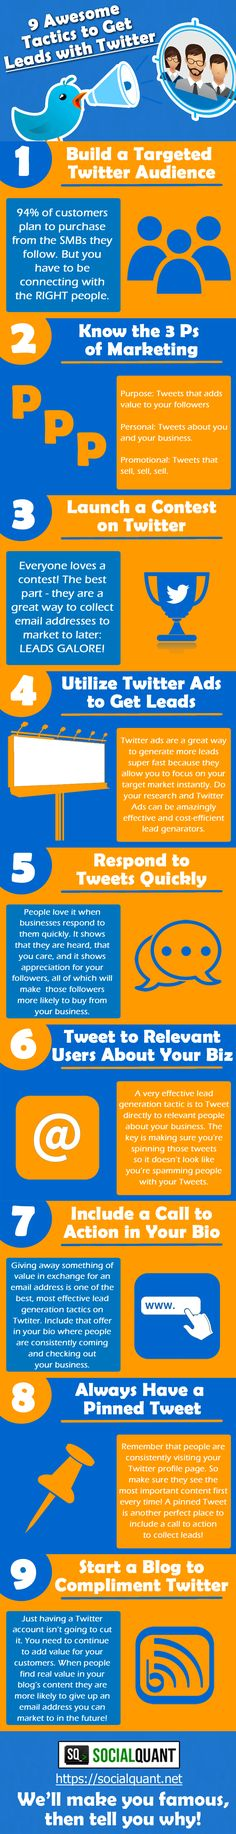 Want to know how to get leads with Twitter? Social Media expert Aaron Lee shares 9 ways to double or even triple the number of leads you get with Twitter!